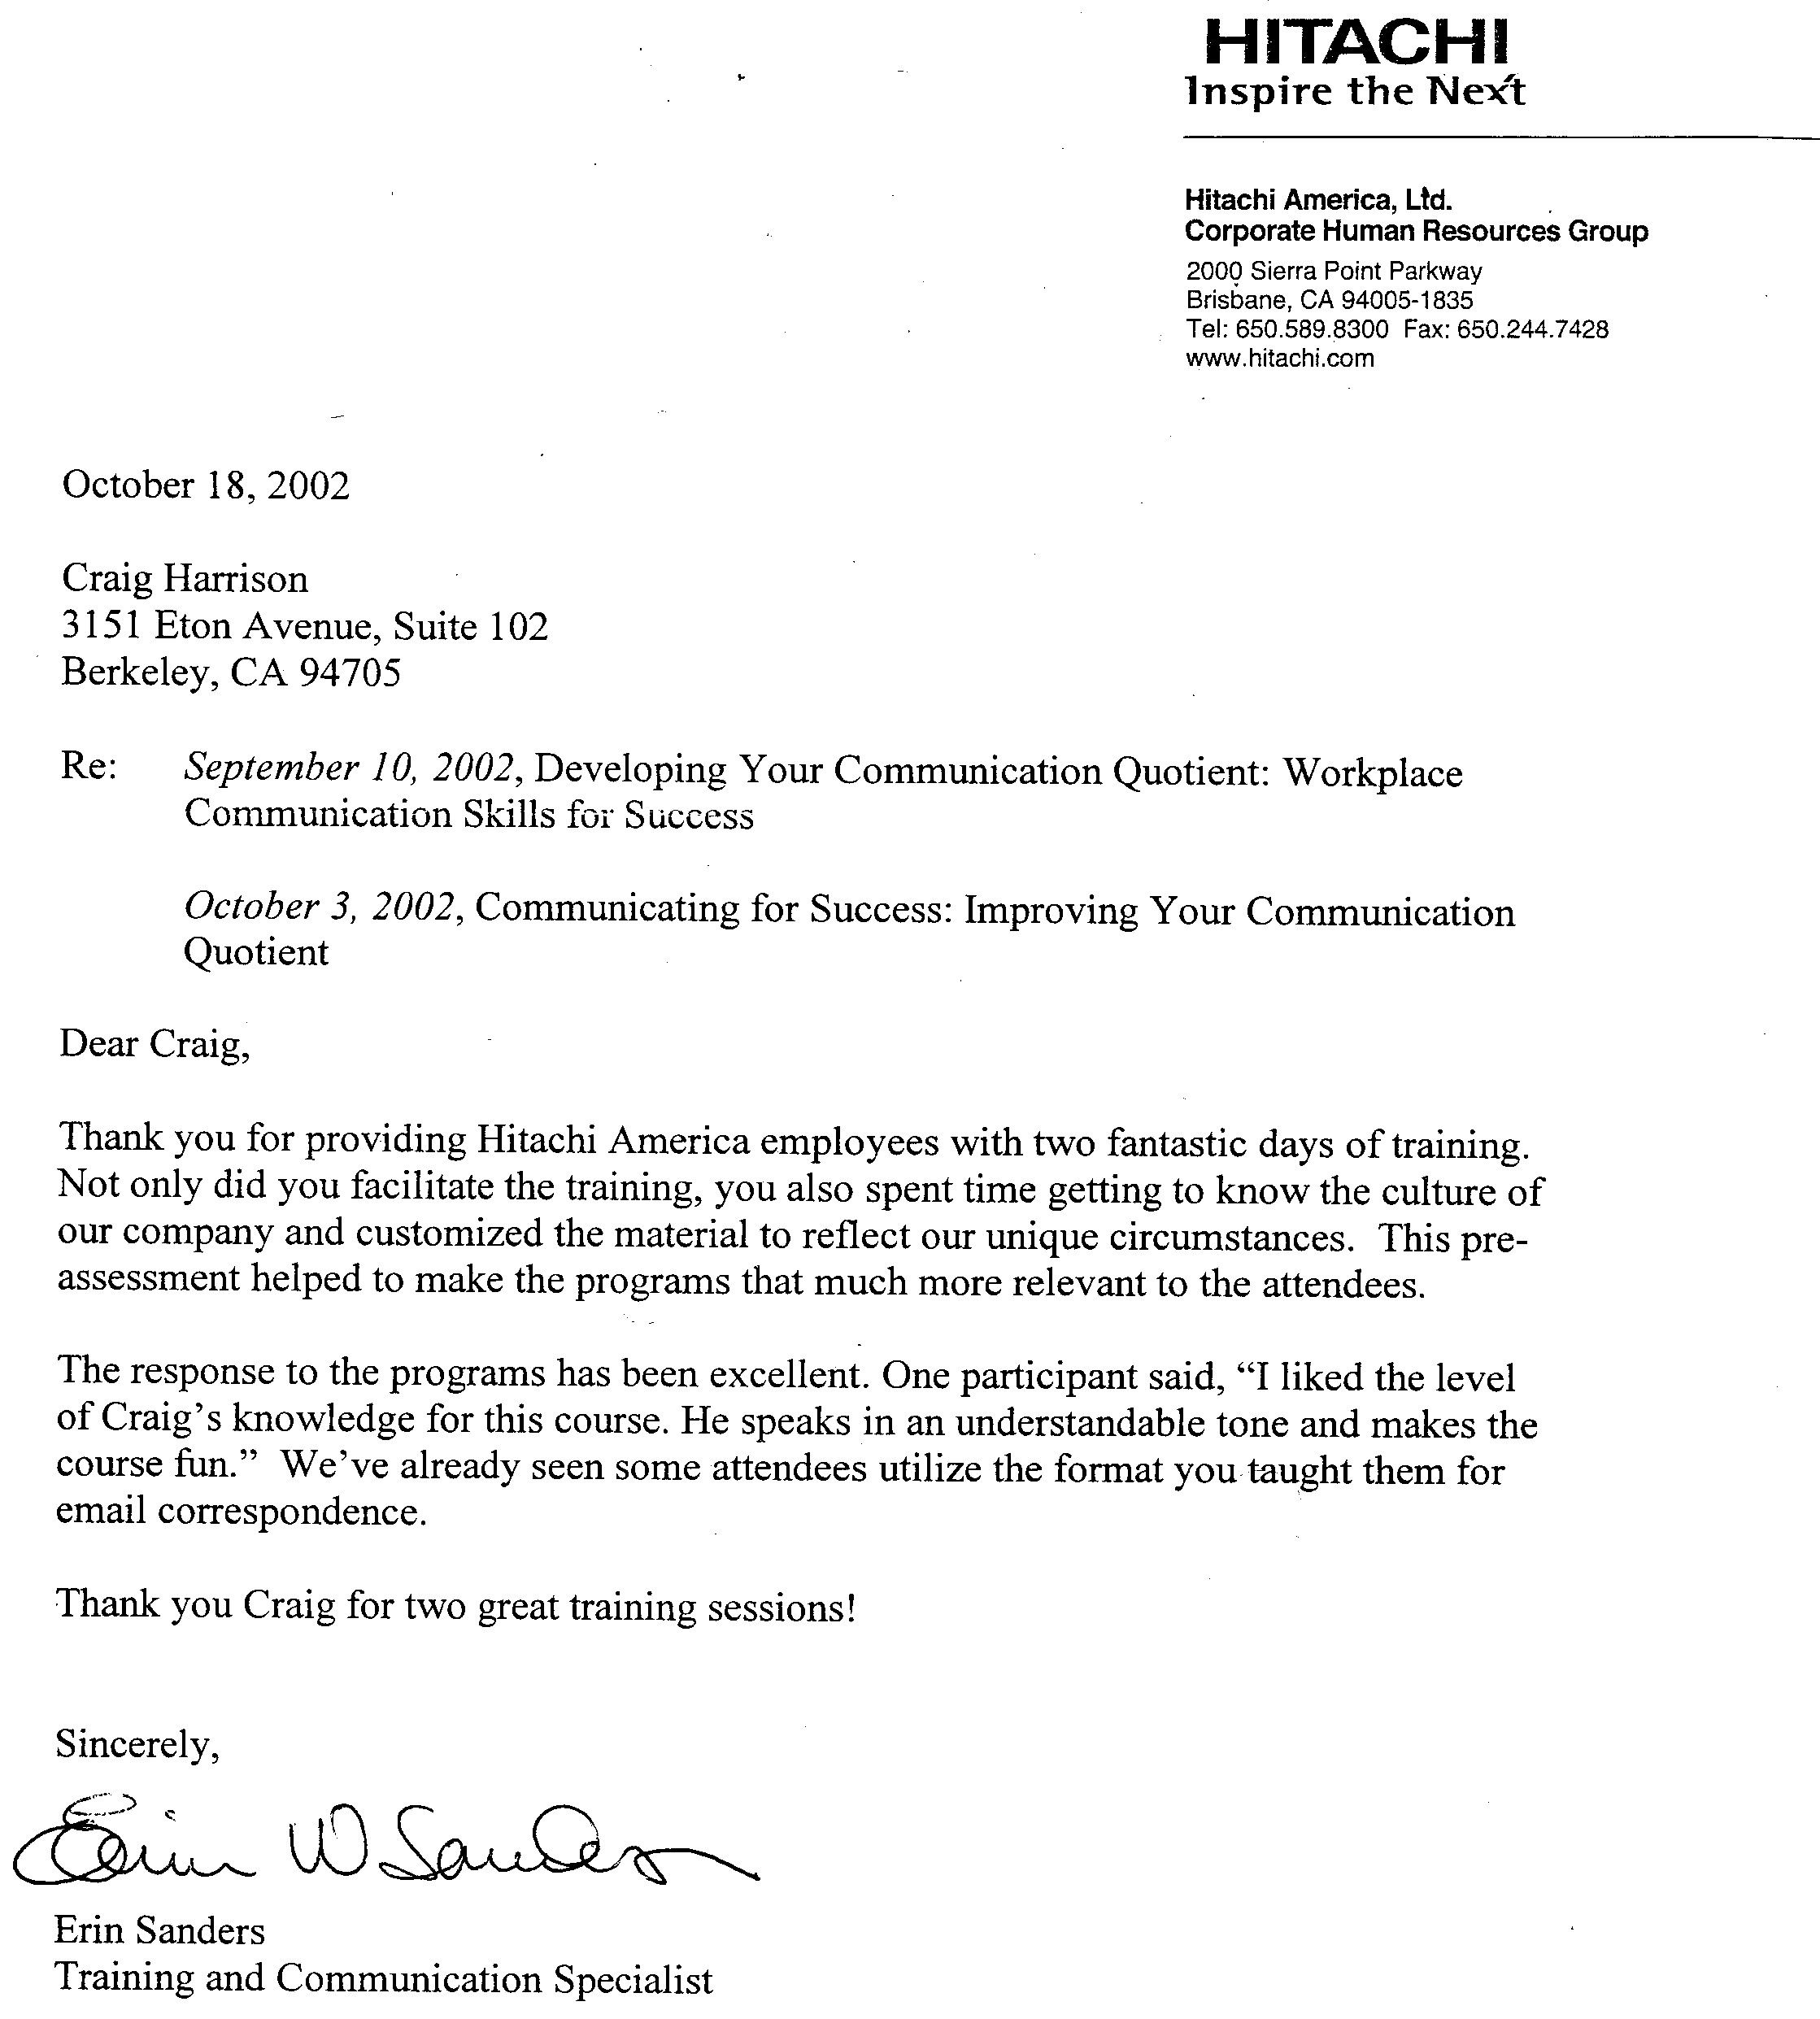 letter of recommendation from employer letter of reference from employer to college business 12830